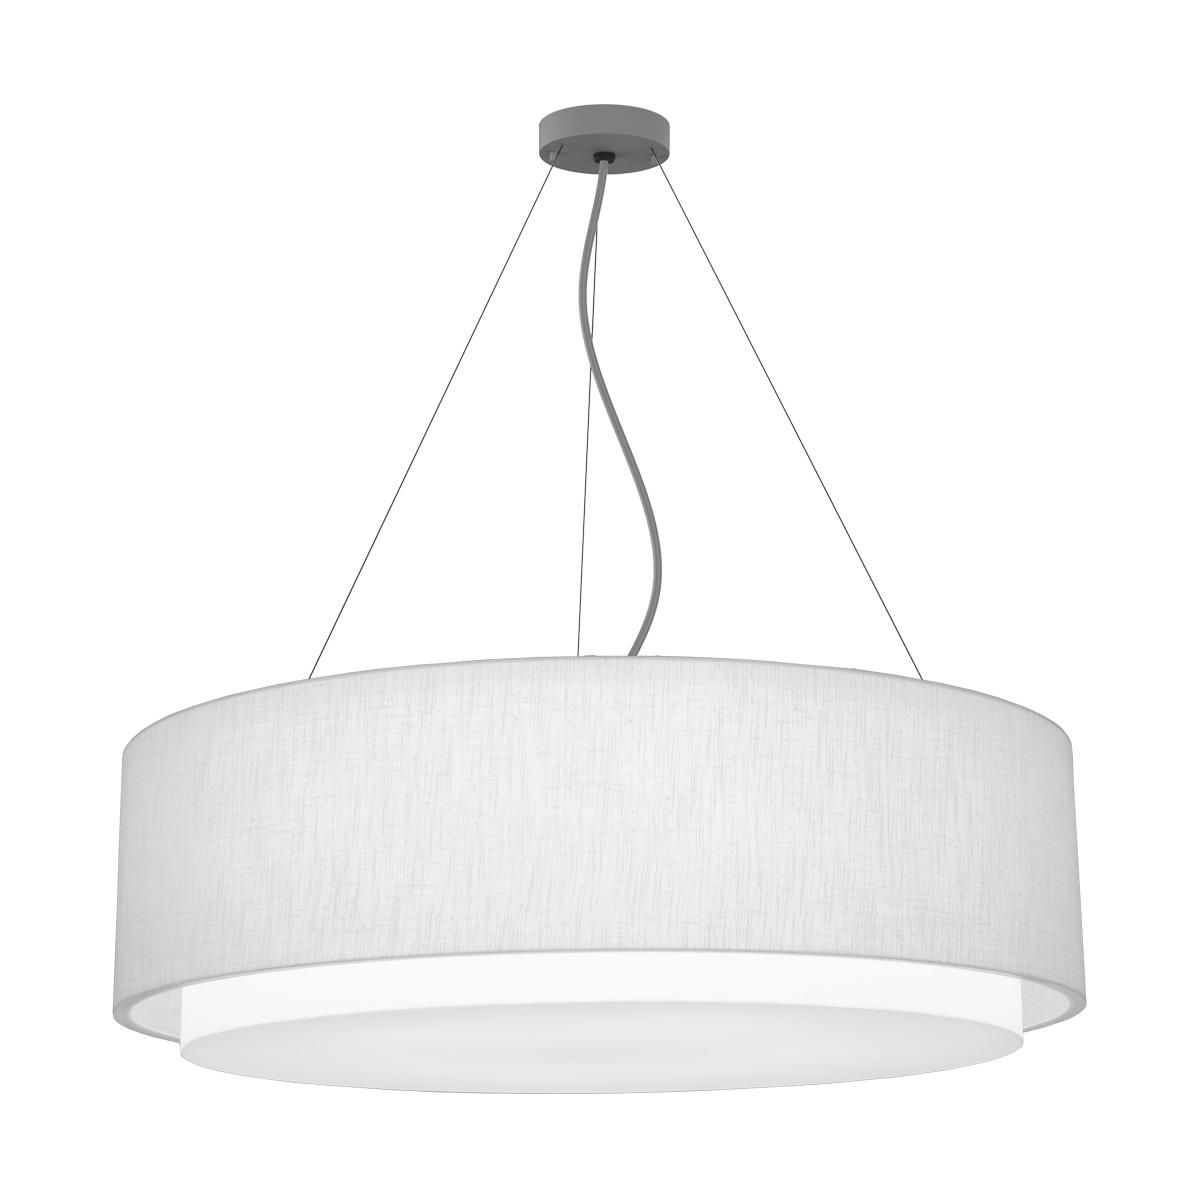 Brownlee Lighting Fashionable Functional Affordable